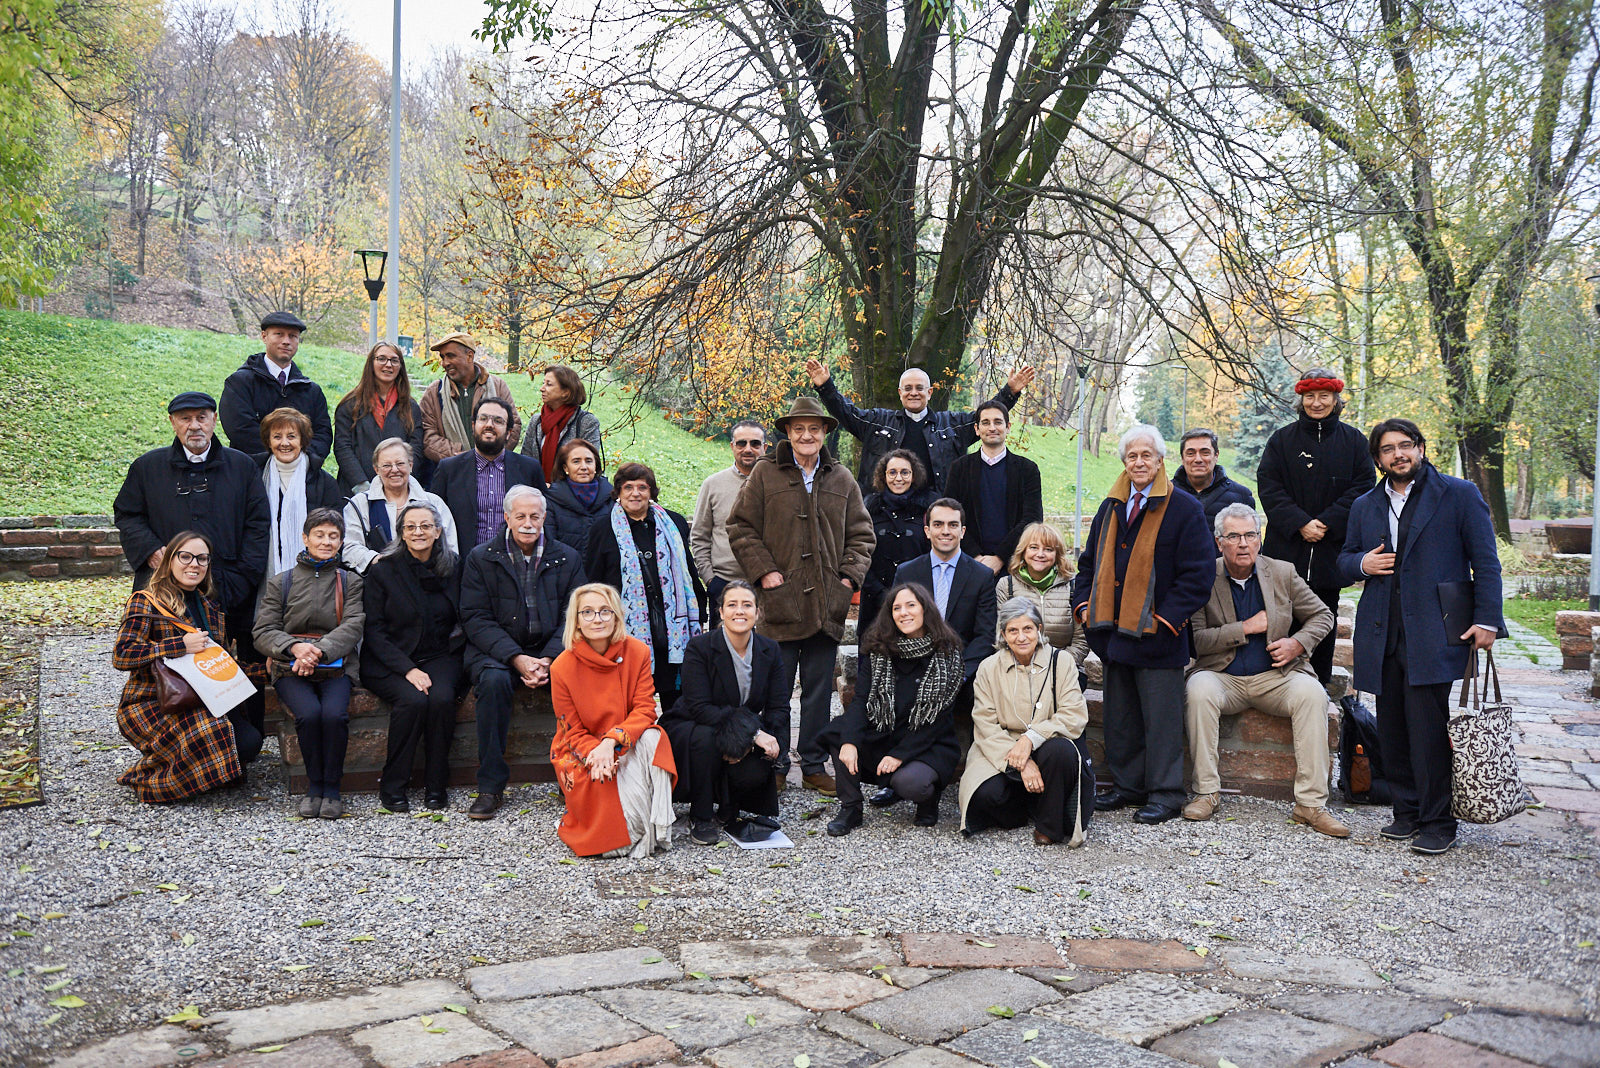 Delegations visiting the Garden of the Righteous, together with Gariwo's staff and co-founders Gabriele Nissim, Pietro Kuciukian and Anna Maria Samuelli